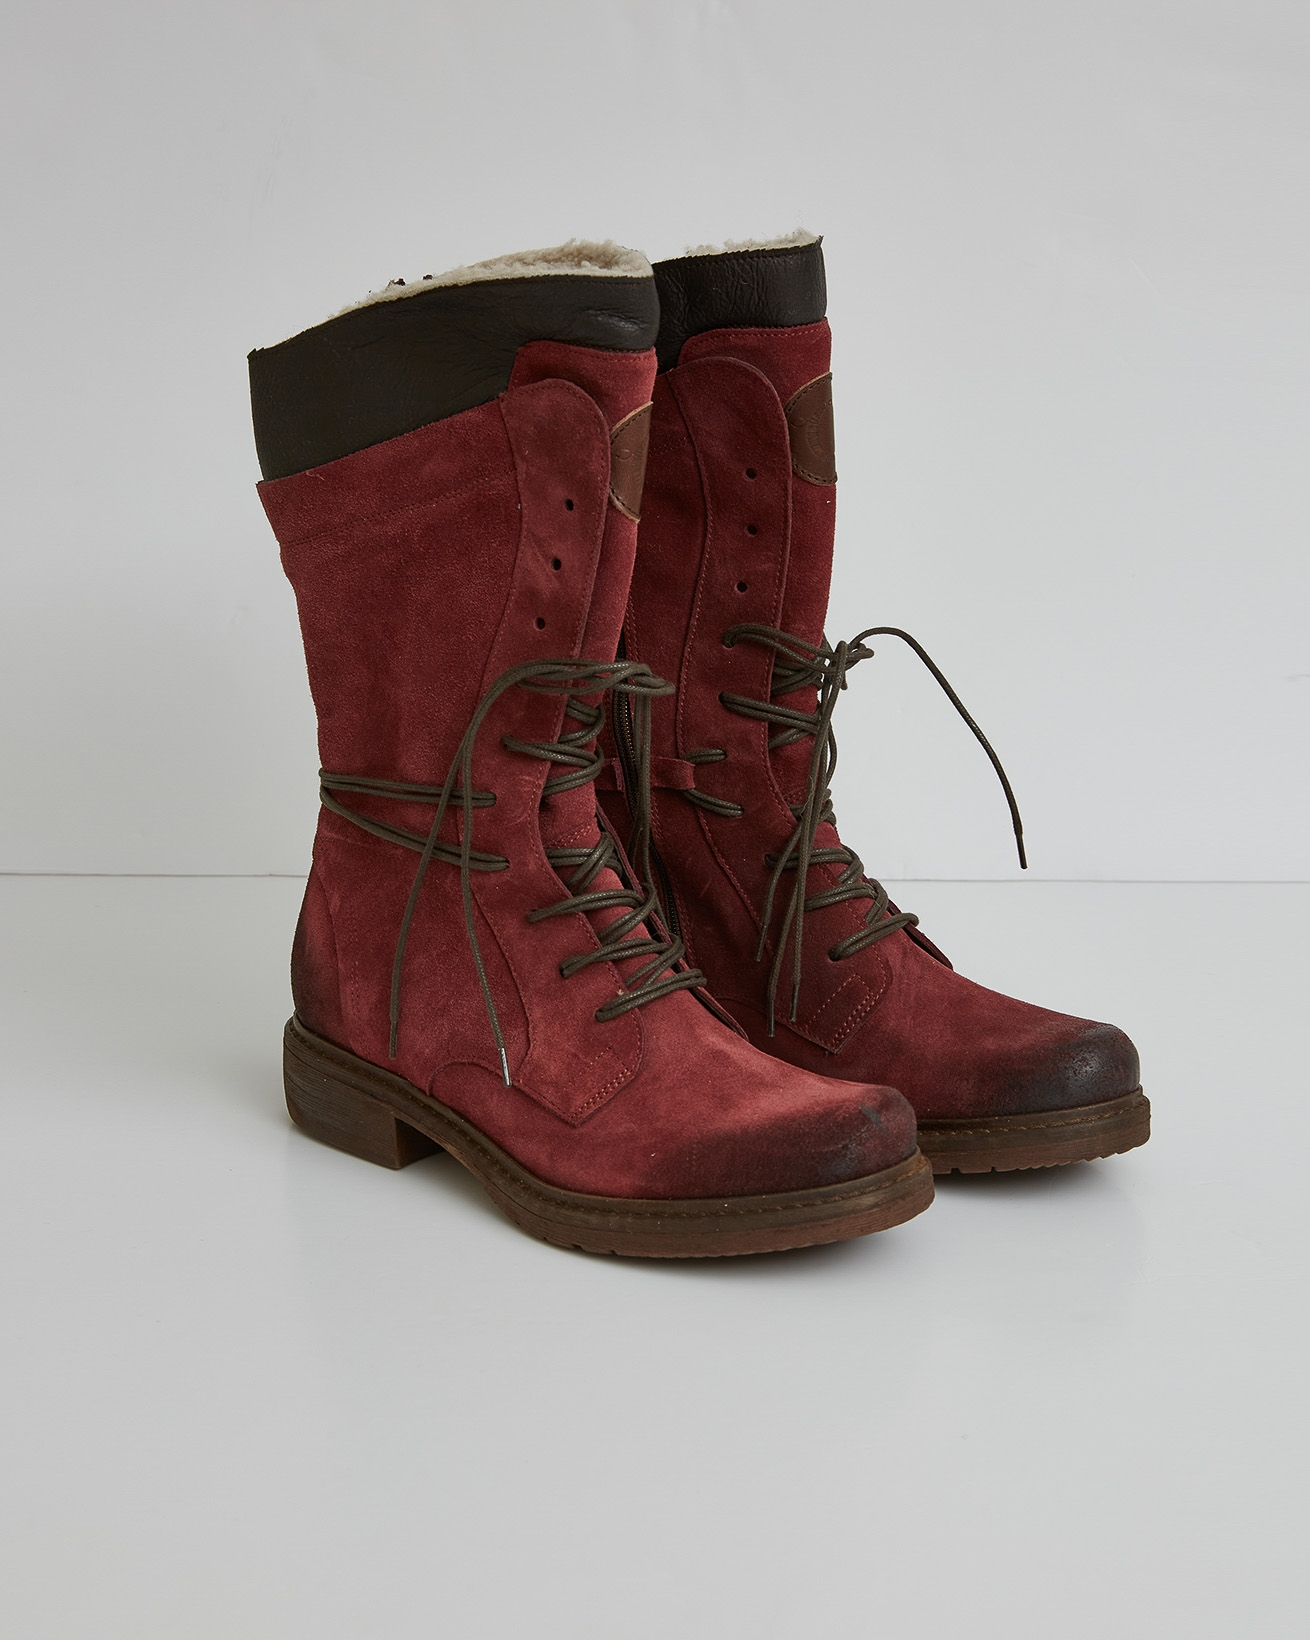 Woodsman Boots - Berry Red - Size 37 - 2759